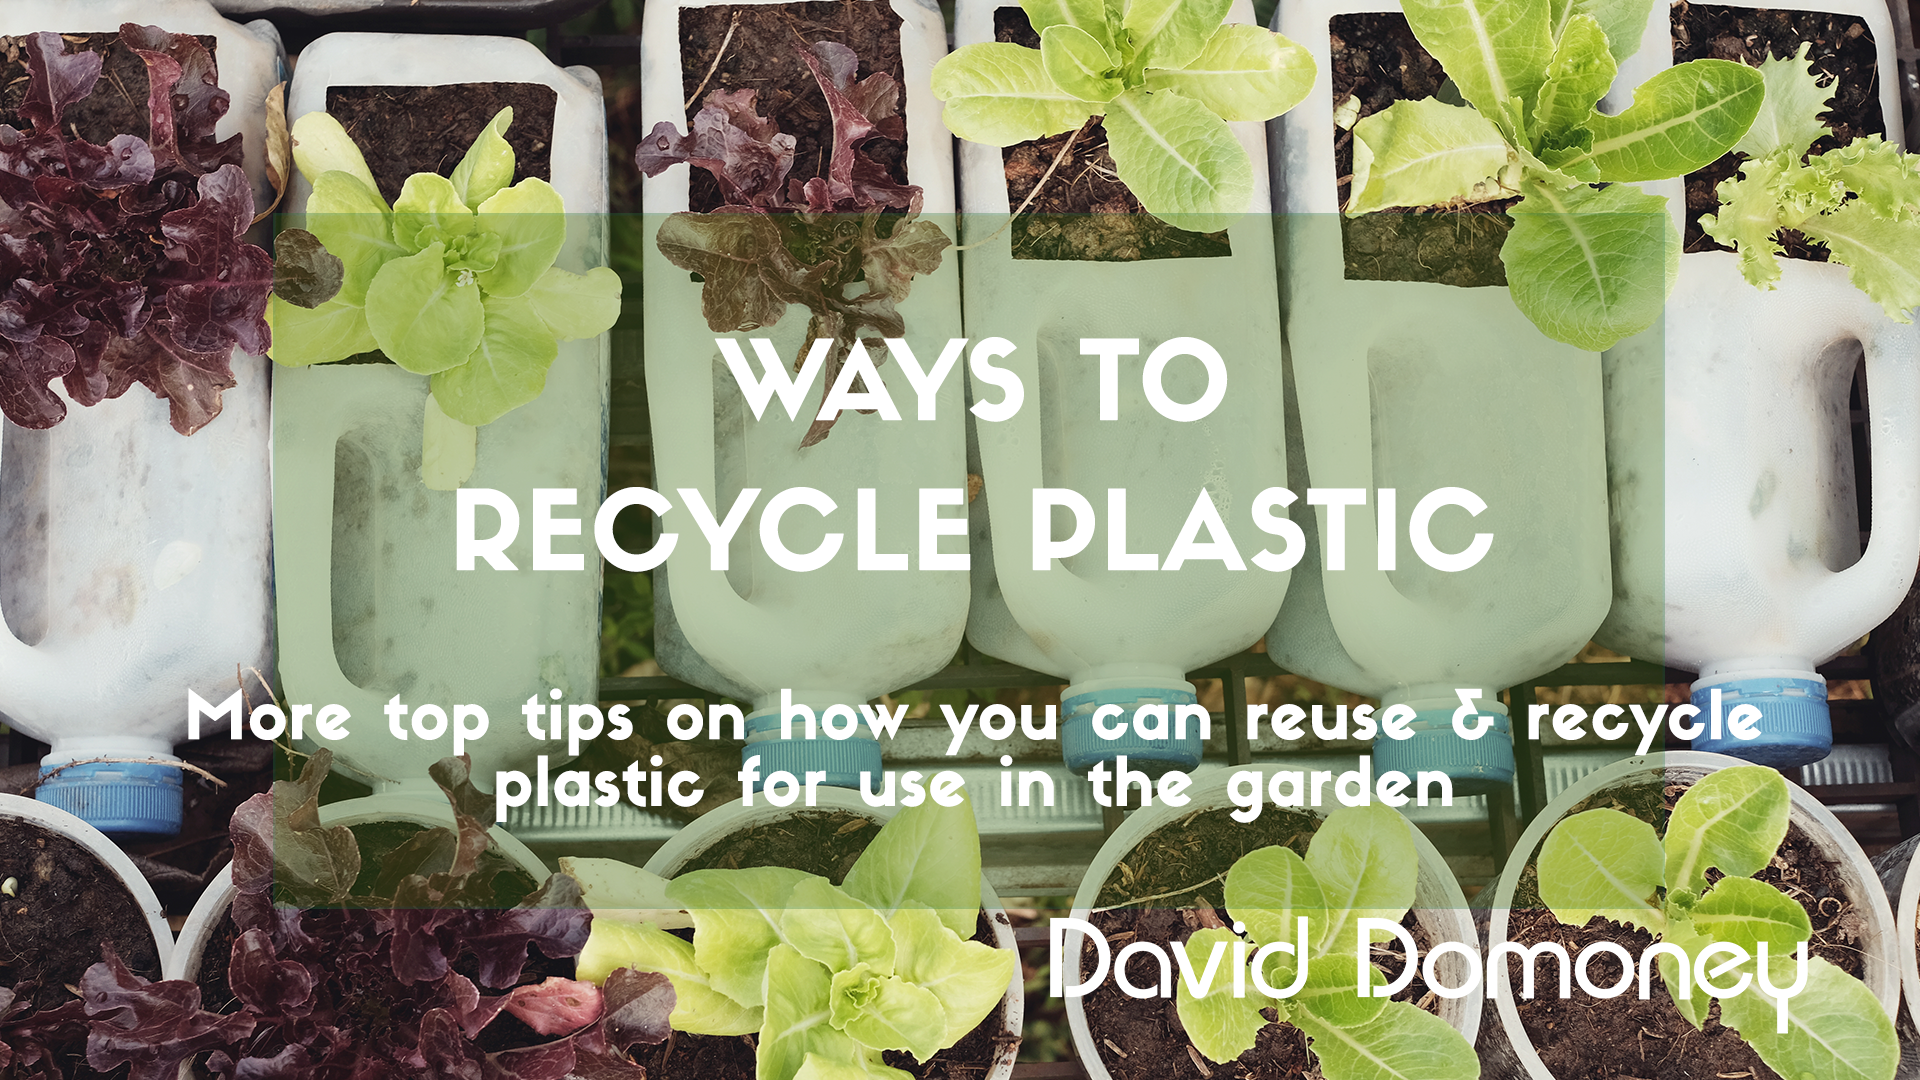 More Ways to Recycle Plastic in the Garden